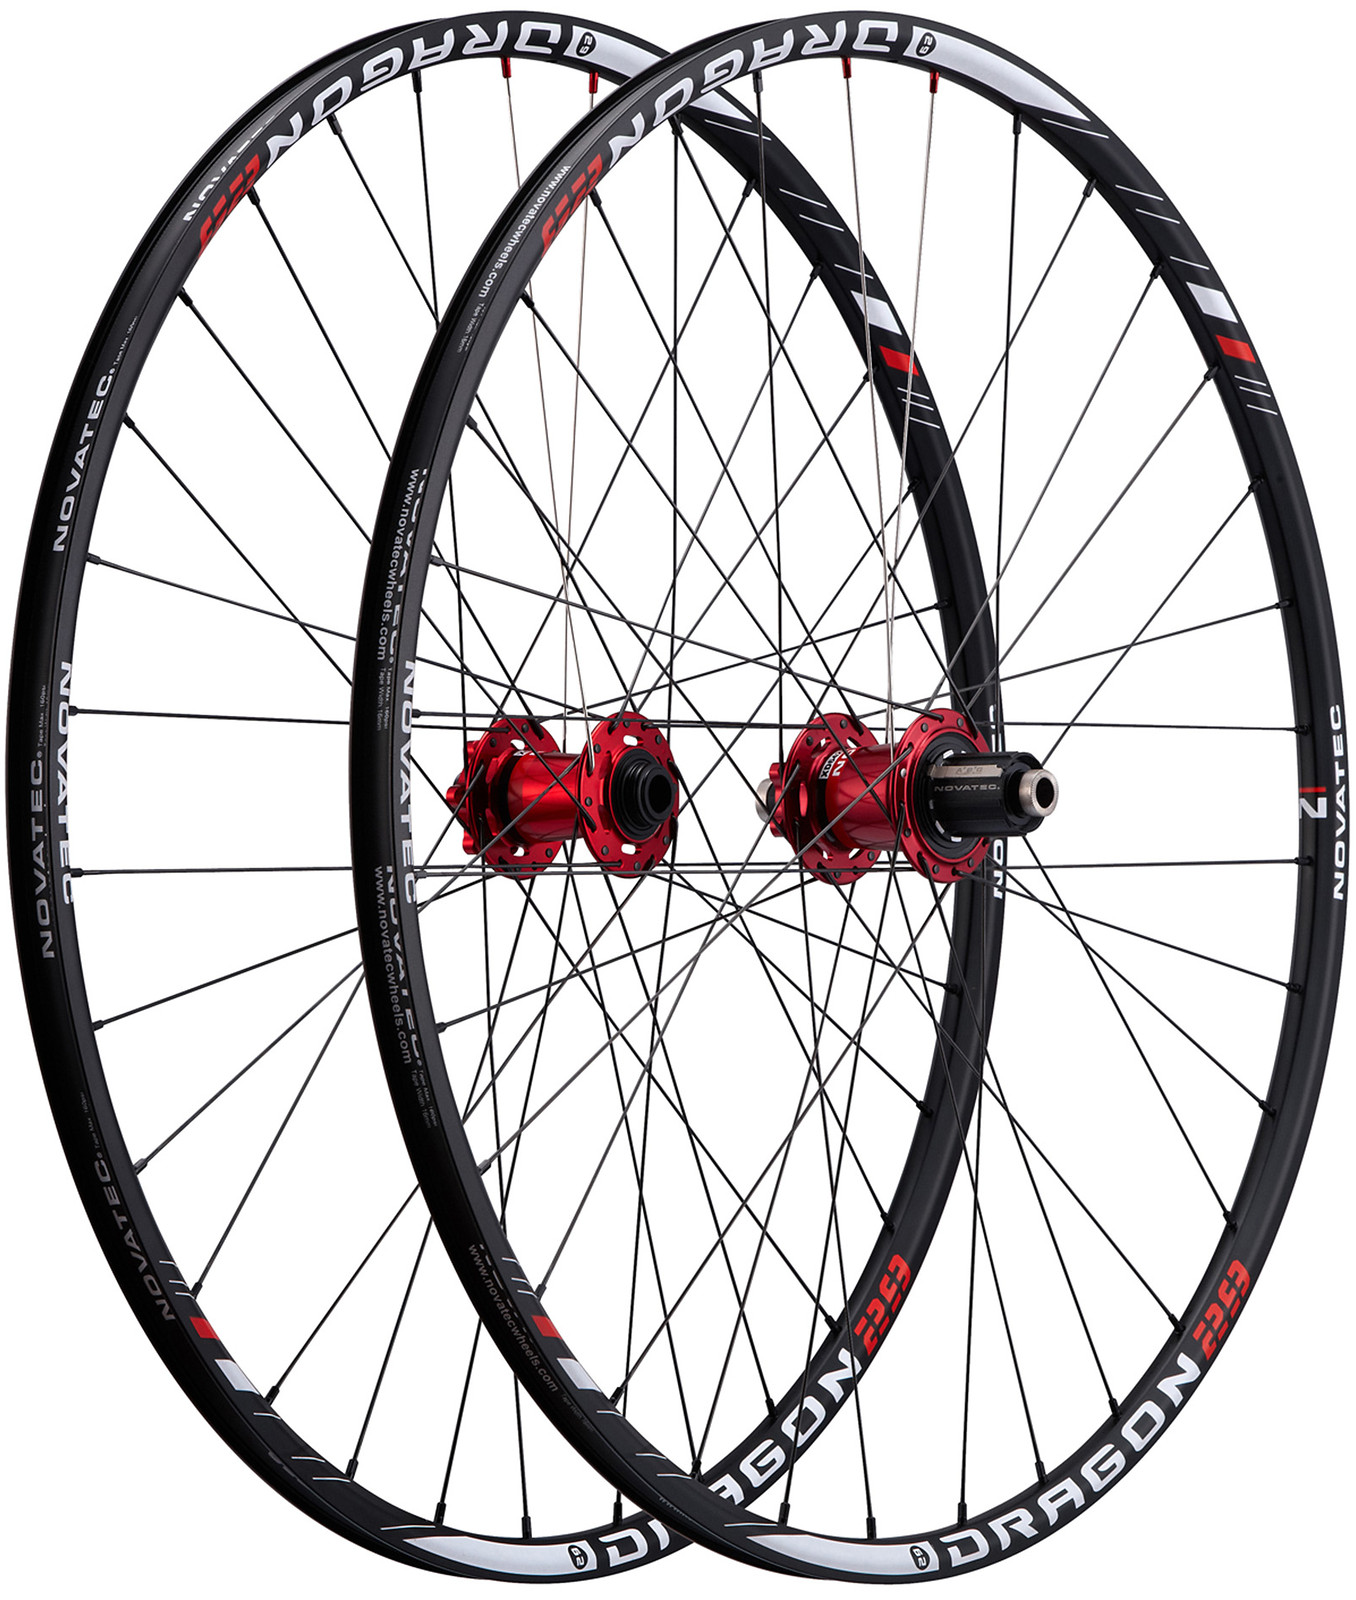 Novatec Dragon 29 Complete Wheelset dragon29